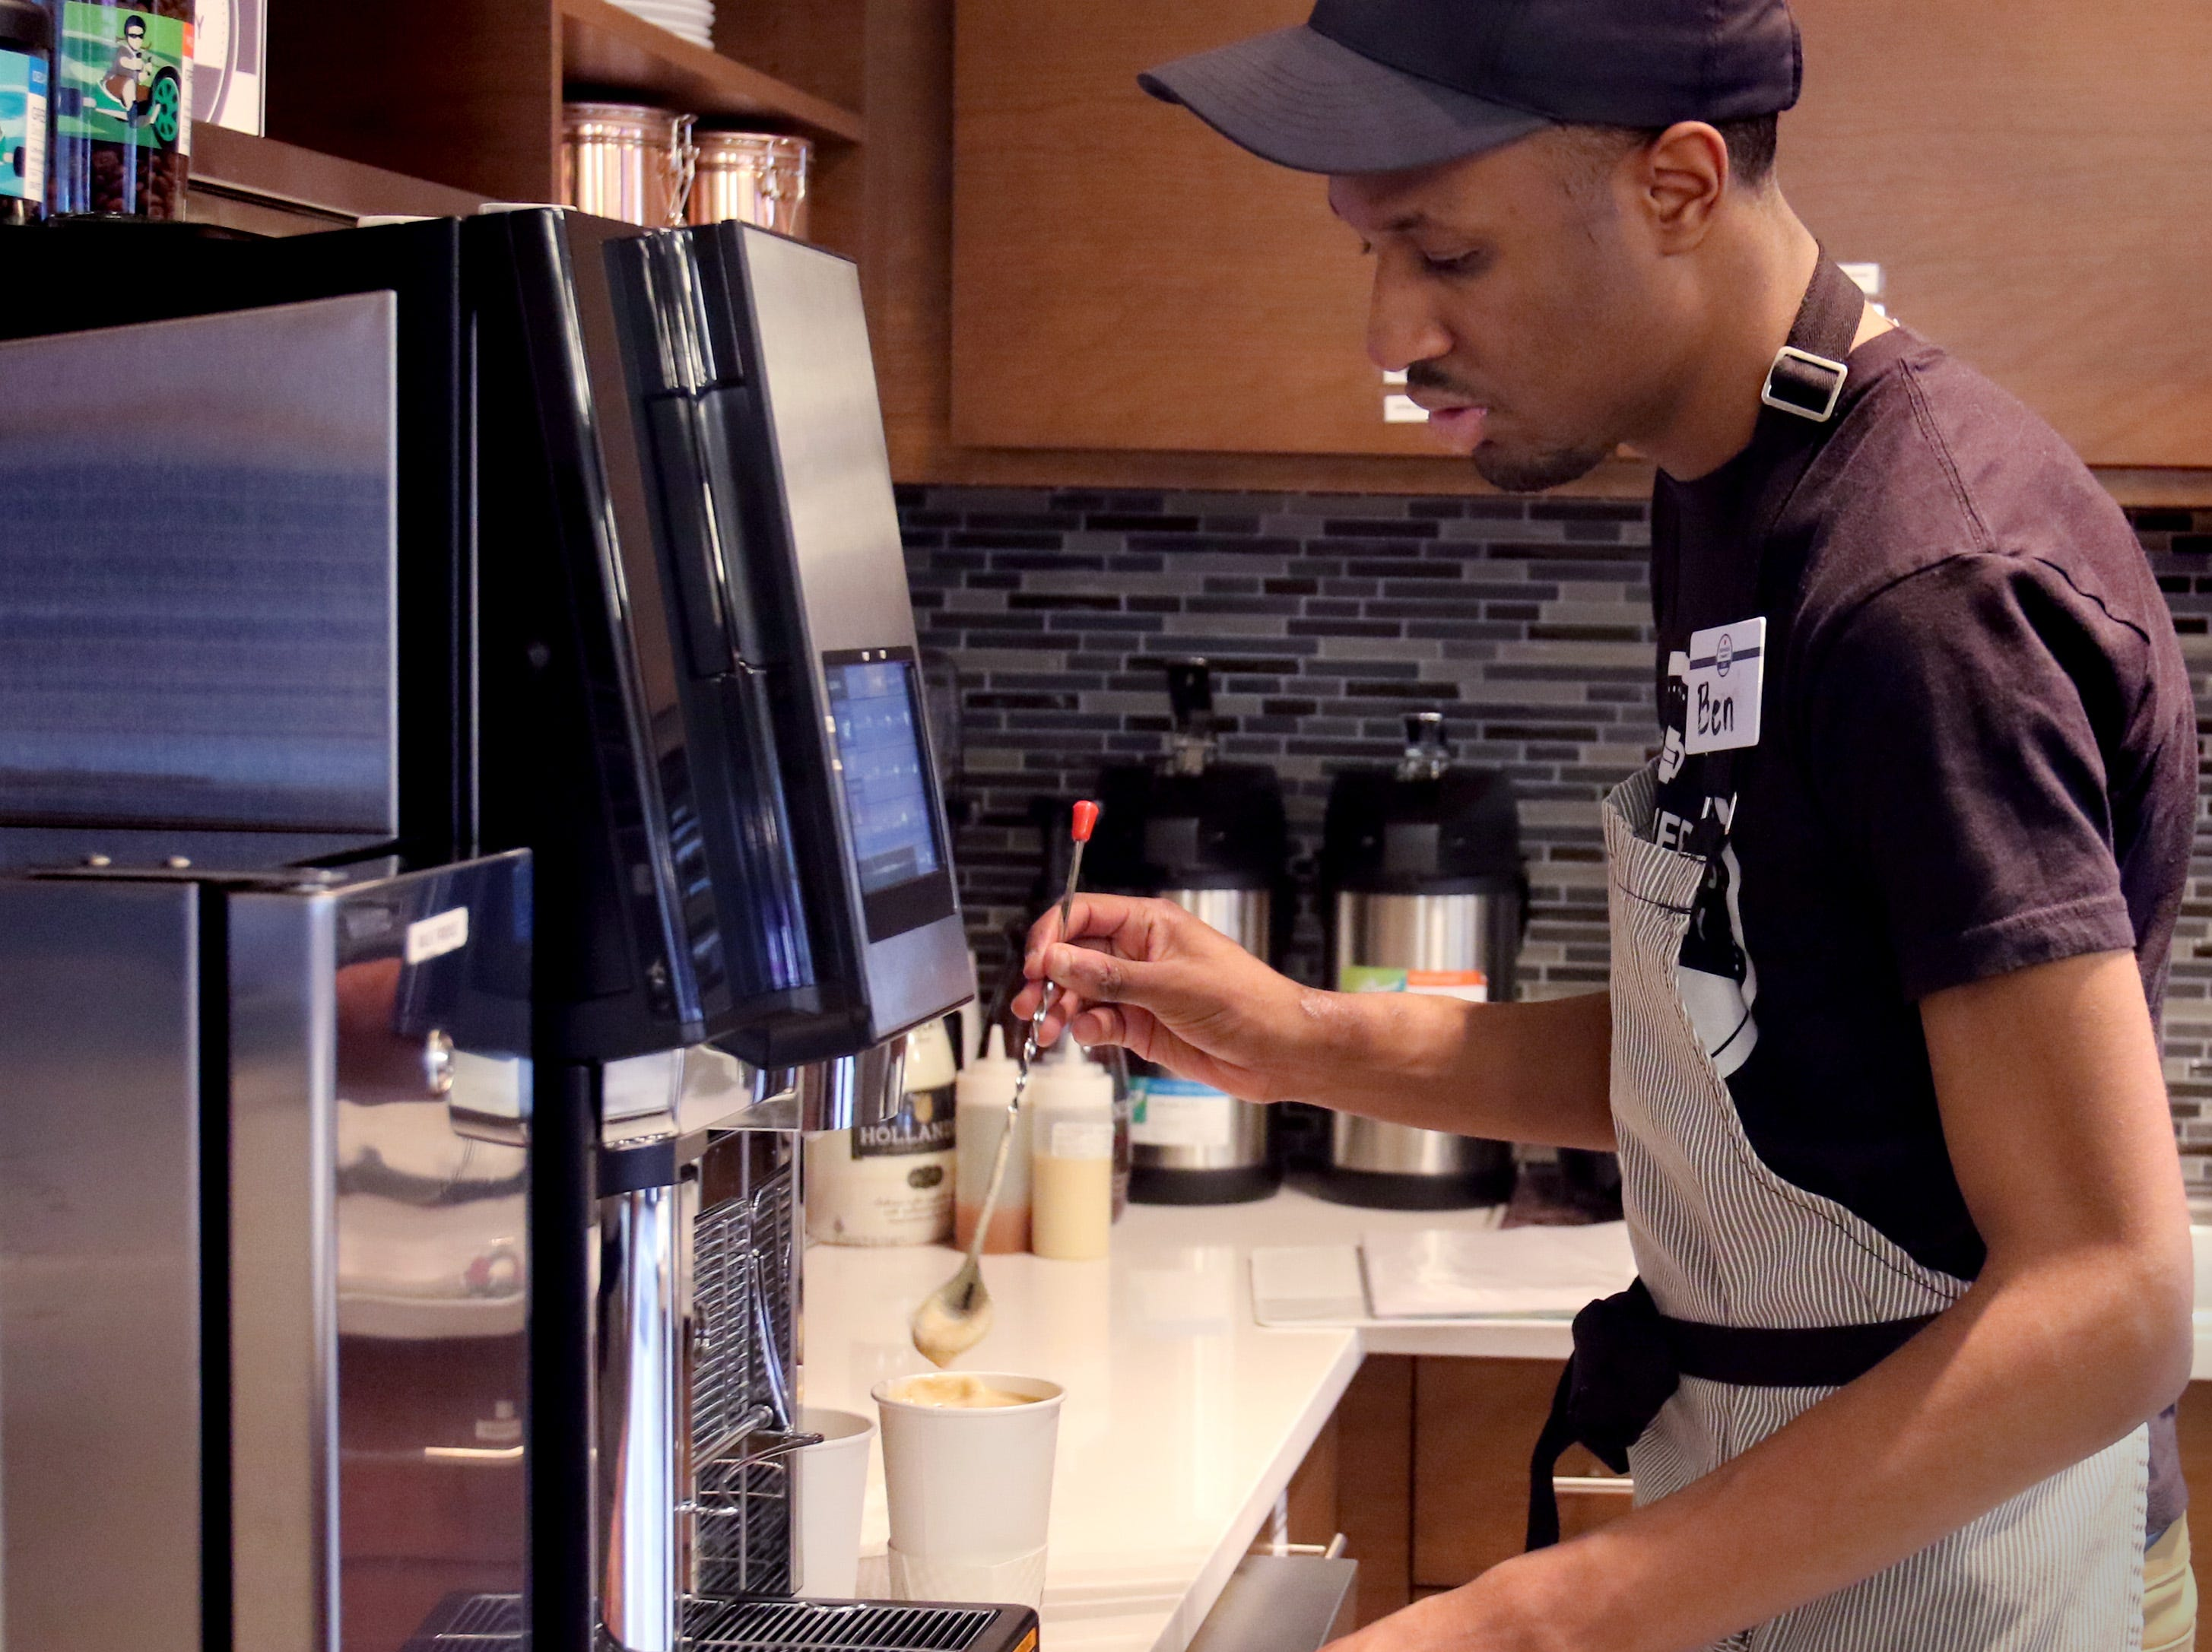 Ben Page mixes a customer's beverage at Shepherds Community Cafe inside Community State Bank in Union Grove on Dec. 20.